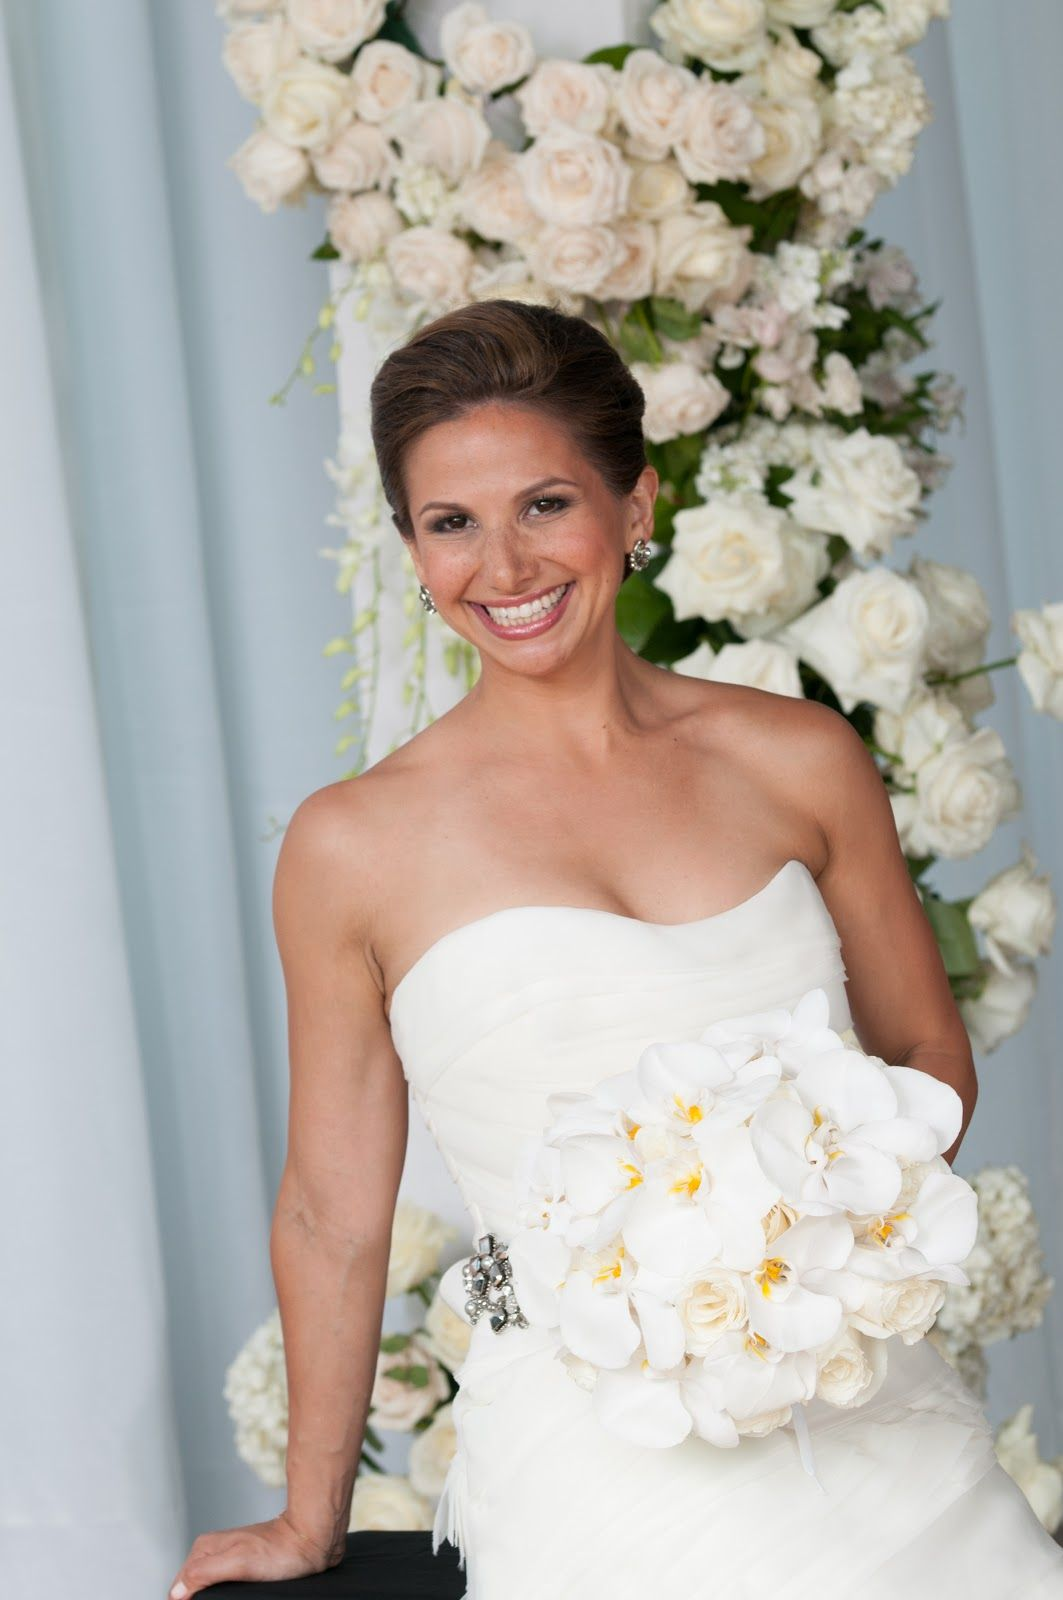 Bridal bouquet by jeannie fortunato of atlas floral decorators nyc